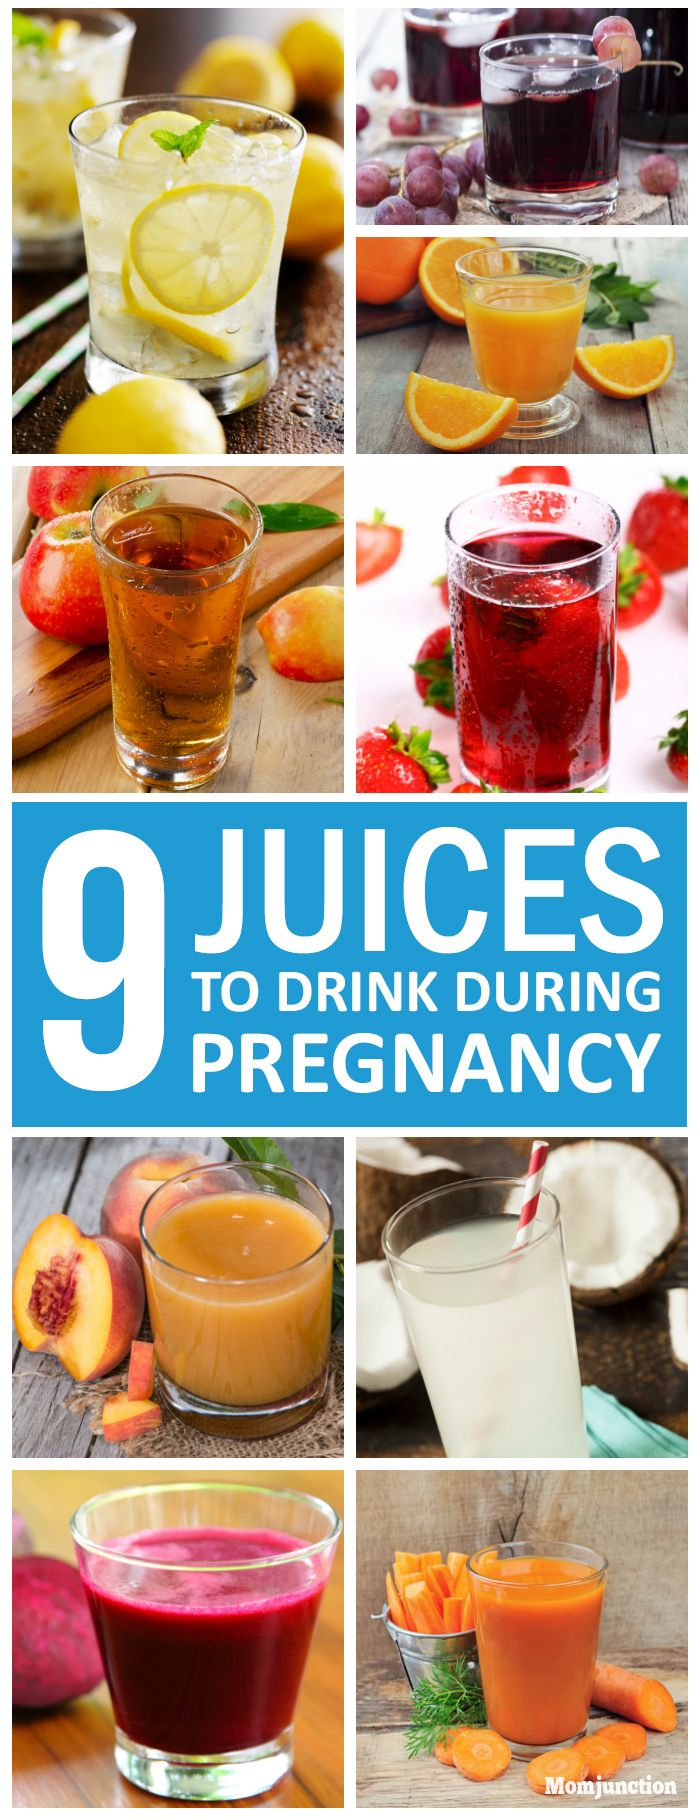 9 Healthy Juices You Should Drink During Pregnancy: You can make some fresh juice each day depending on what vegetables and fruits you like, and what is available as per the season. Check out 9 best juices during pregnancy